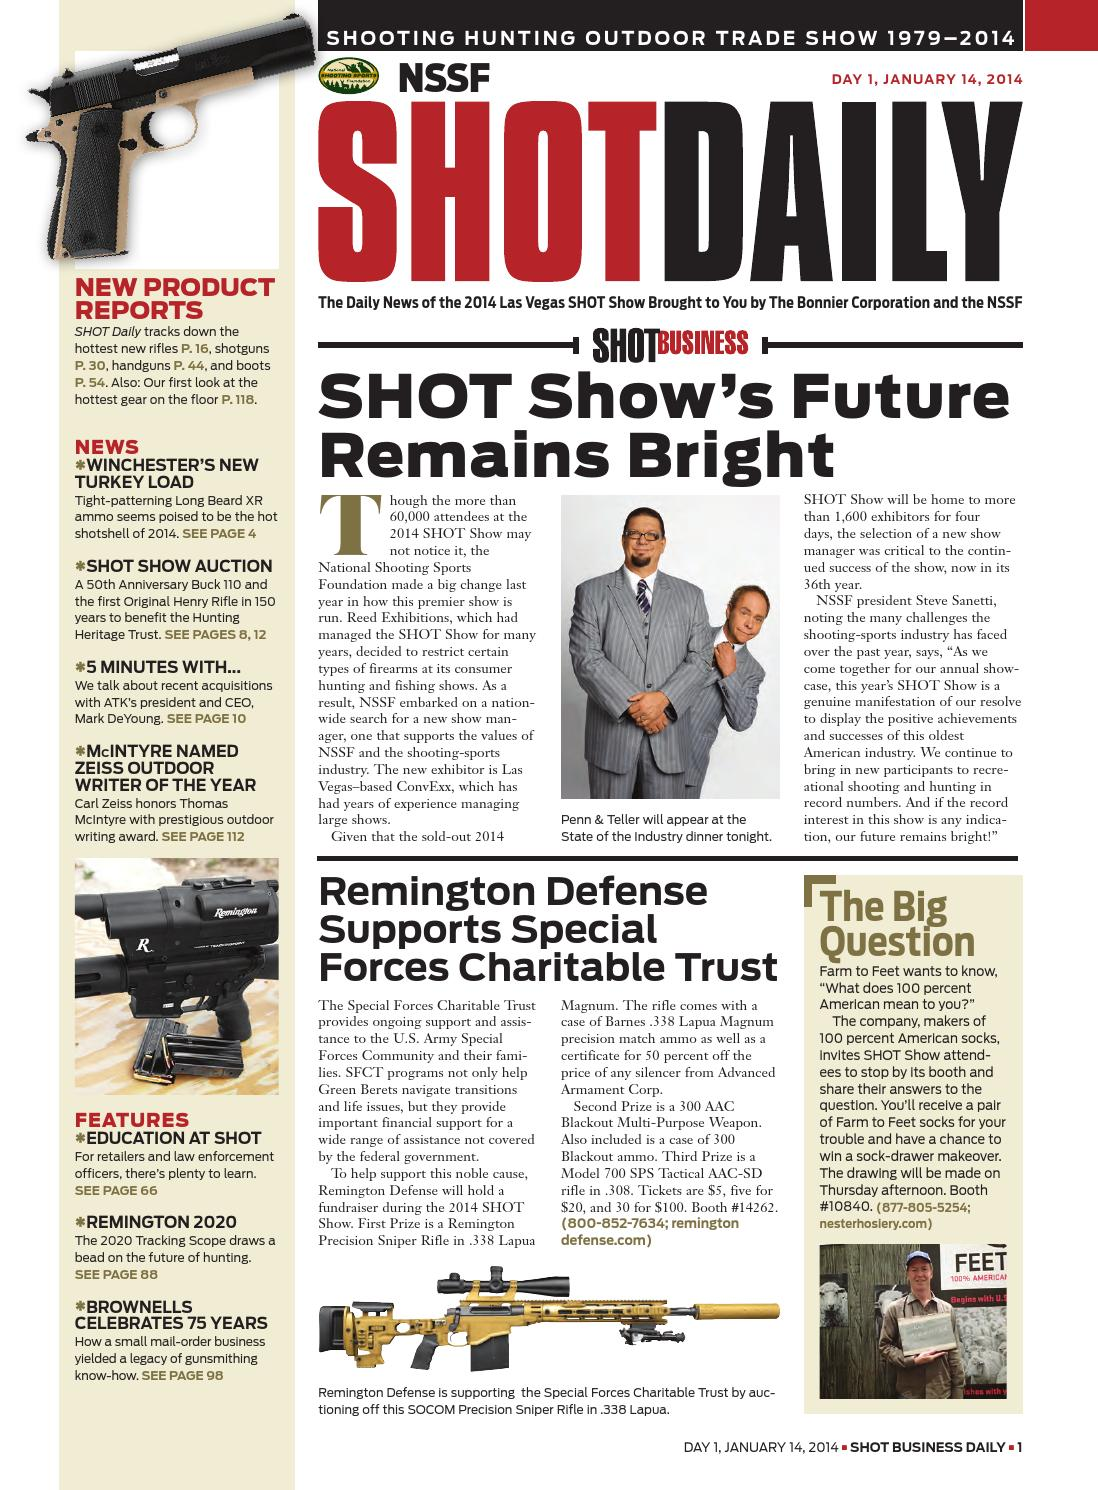 SHOT Daily 1 2014 by SHOT Business - issuu